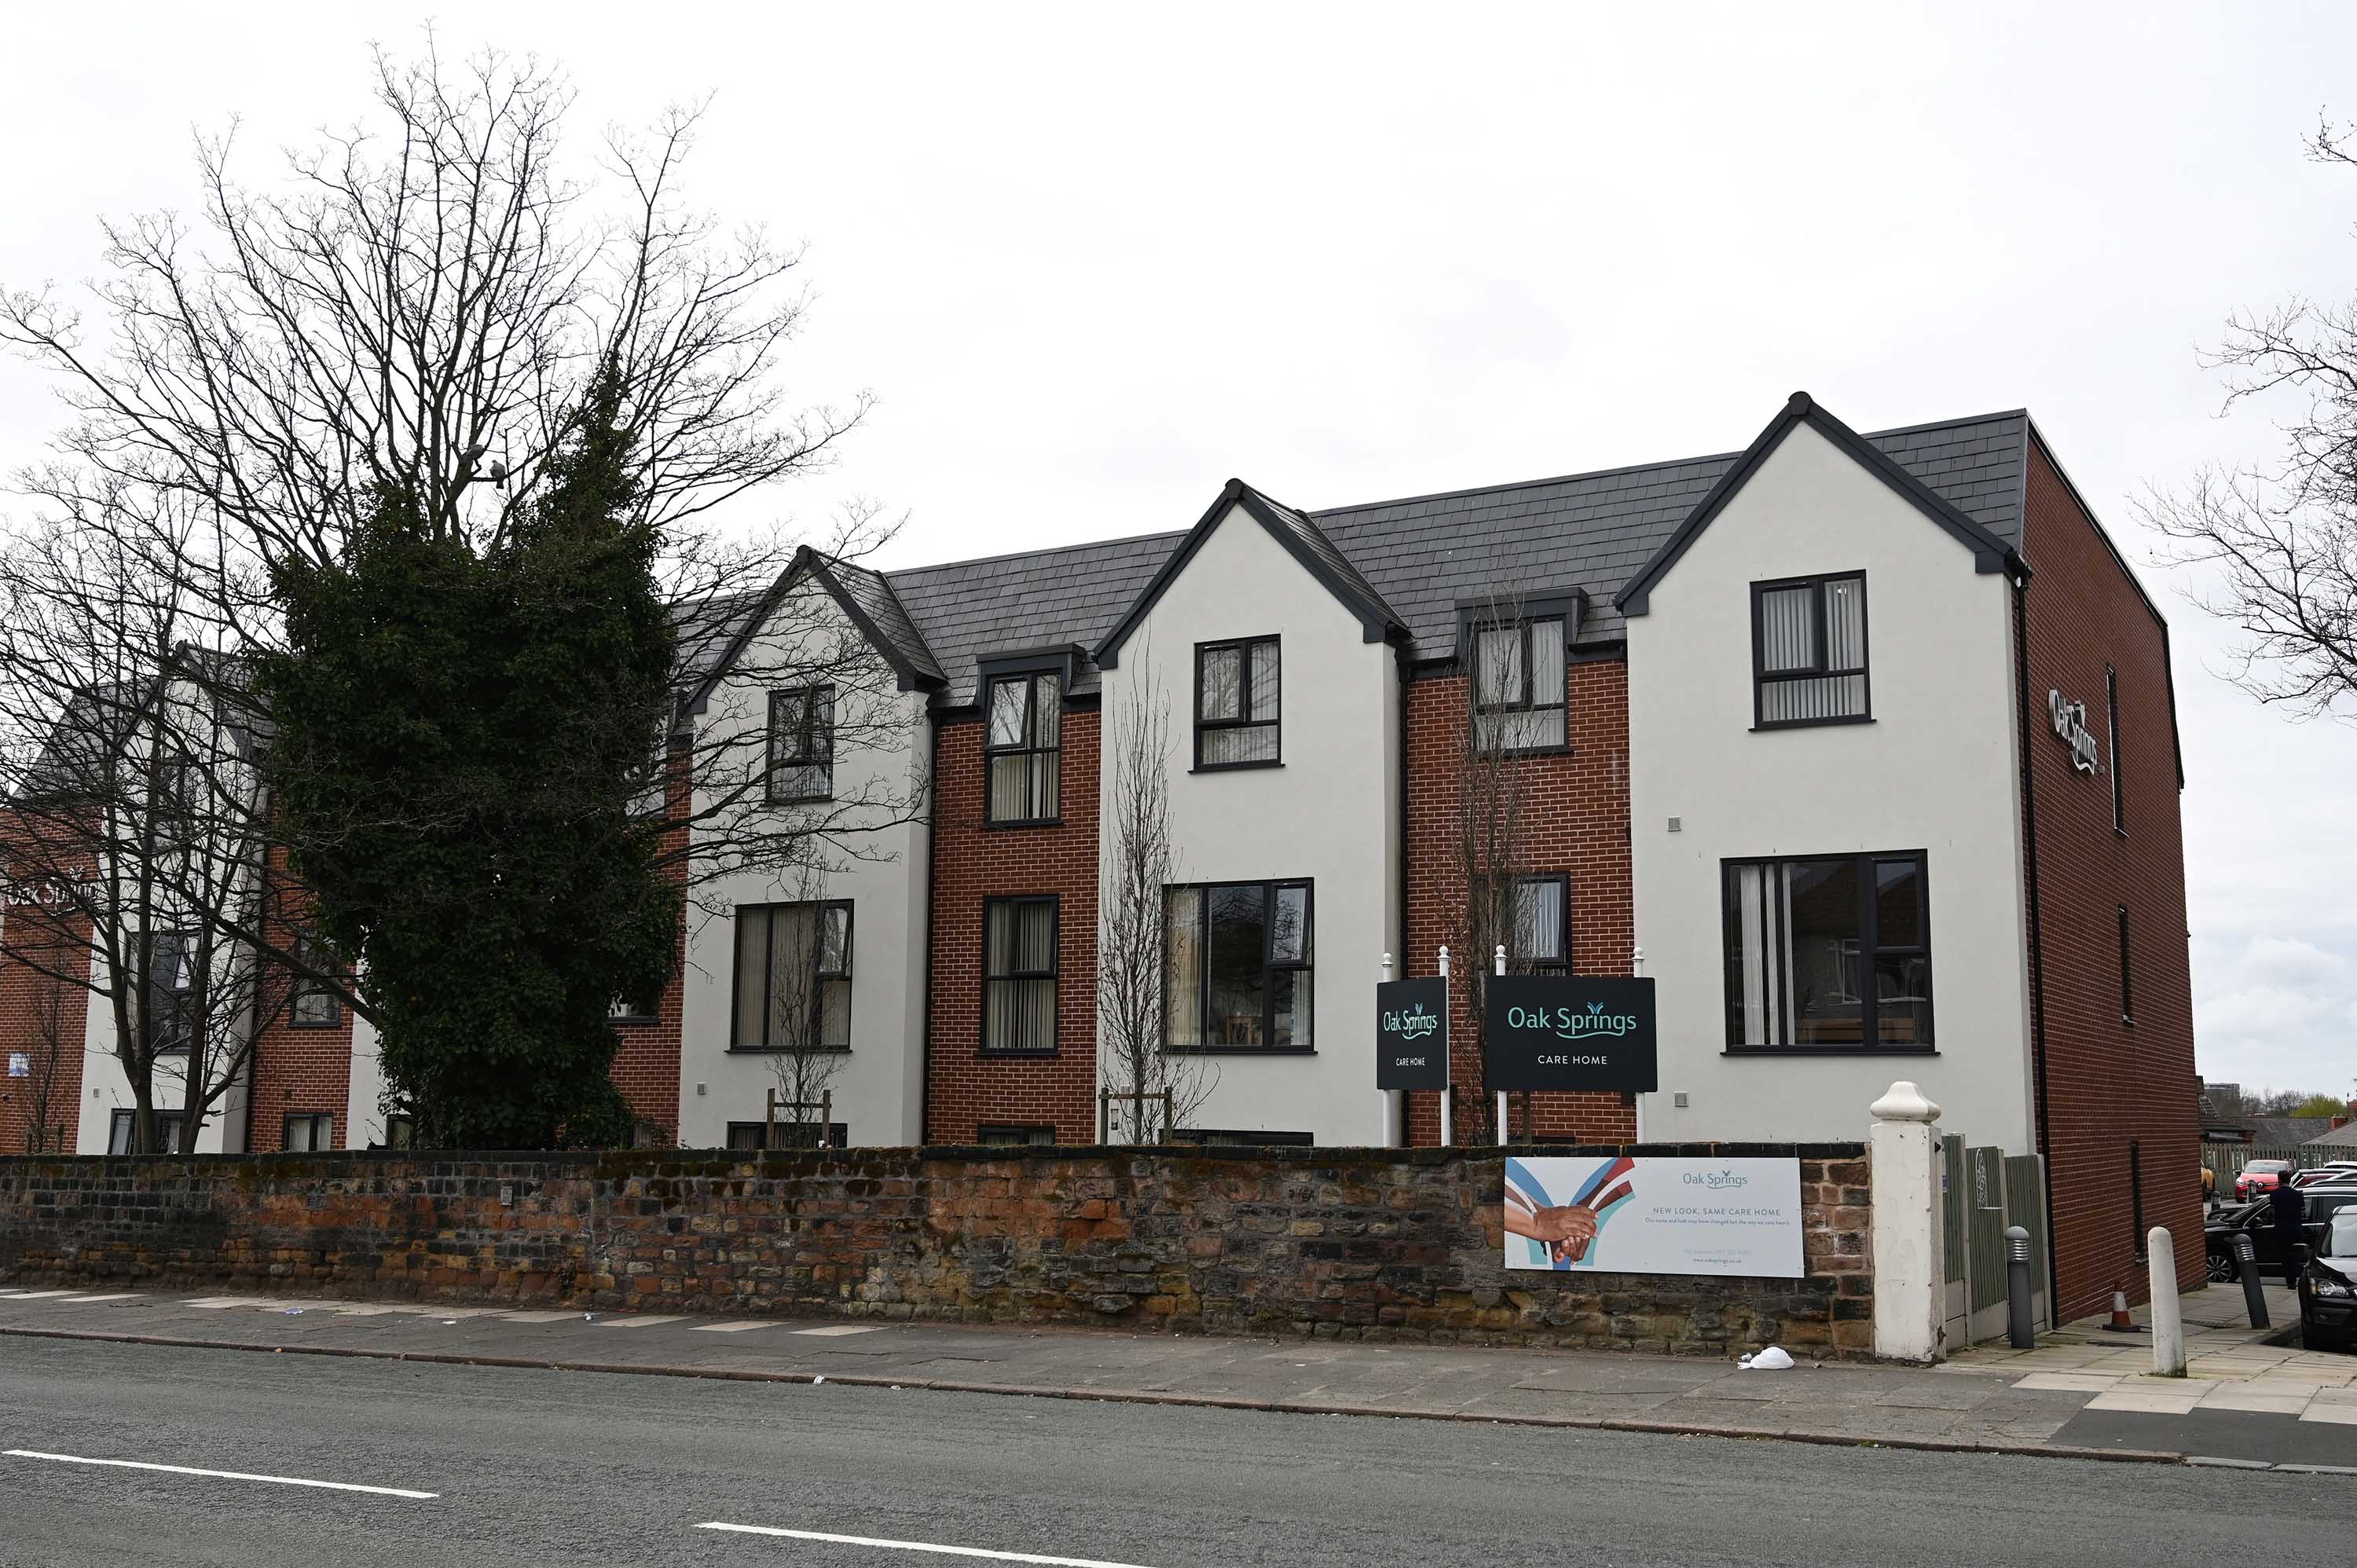 Oak Spring care home in Liverpool, England. The home's management says there have been suspected cases of coronavirus-related deaths at the facility.